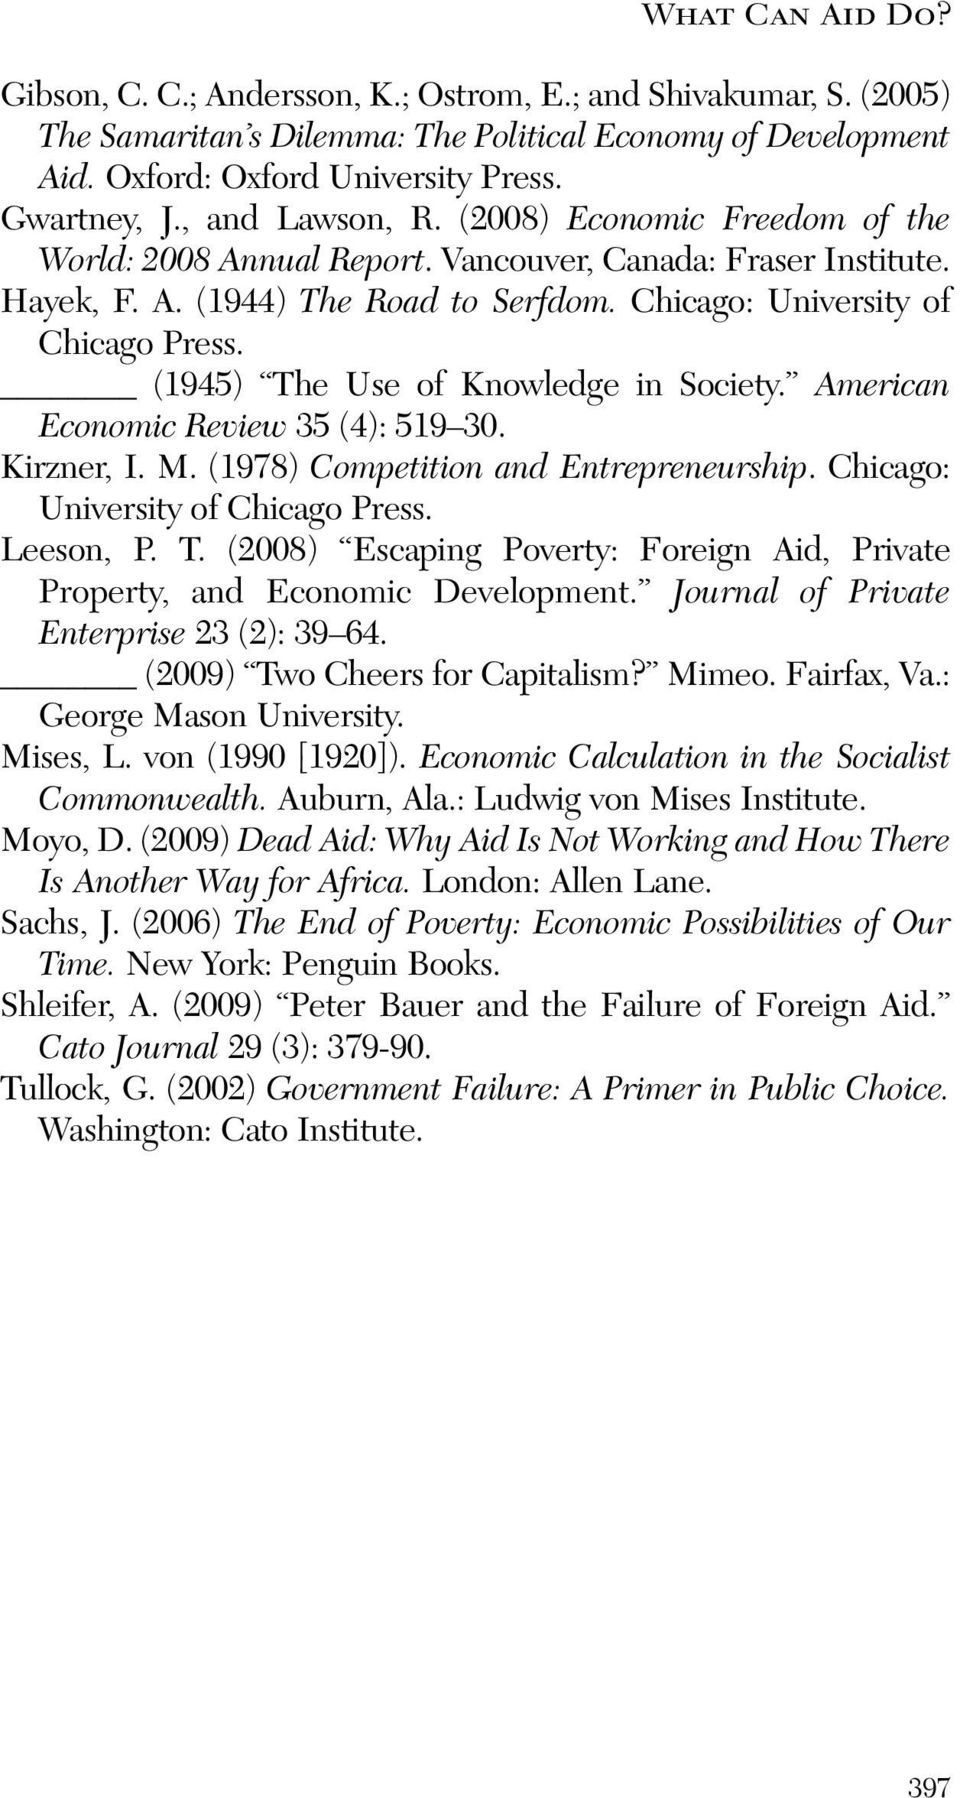 (1945) The Use of Knowledge in Society. American Economic Review 35 (4): 519 30. Kirzner, I. M. (1978) Competition and Entrepreneurship. Chicago: University of Chicago Press. Leeson, P. T. (2008) Escaping Poverty: Foreign Aid, Private Property, and Economic Development.